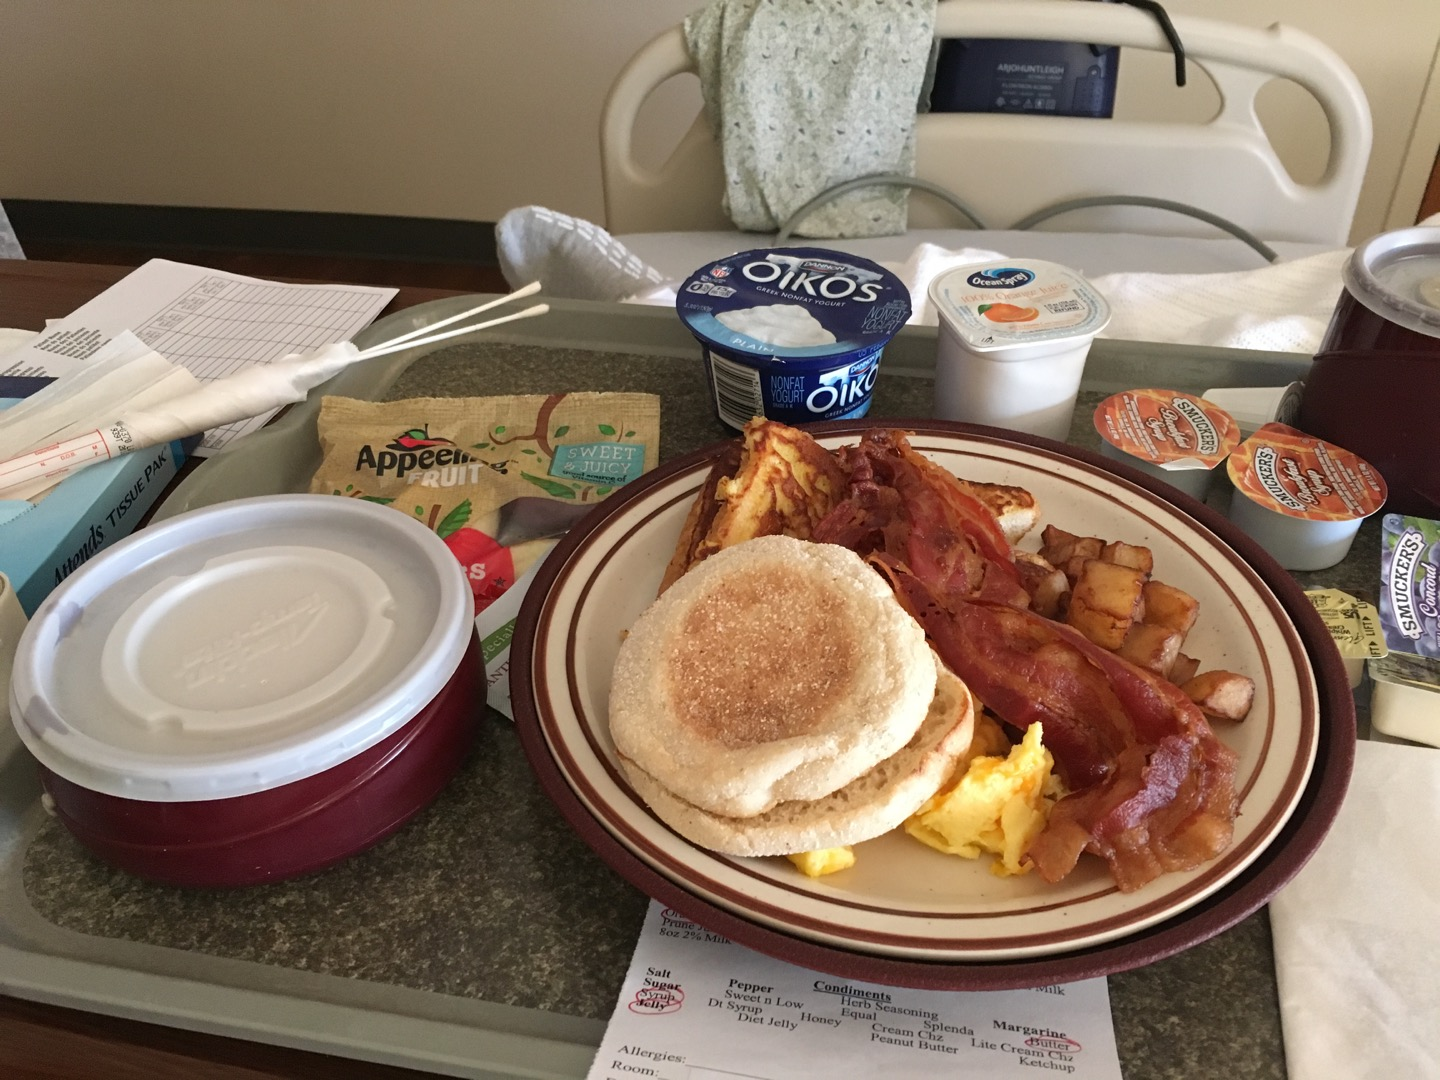 Scrambled eggs with cheese, french toast, bacon, english muffin, oatmeal, apple slices, plain greek yogurt. I didn't eat all of this, but just a little bit of each.